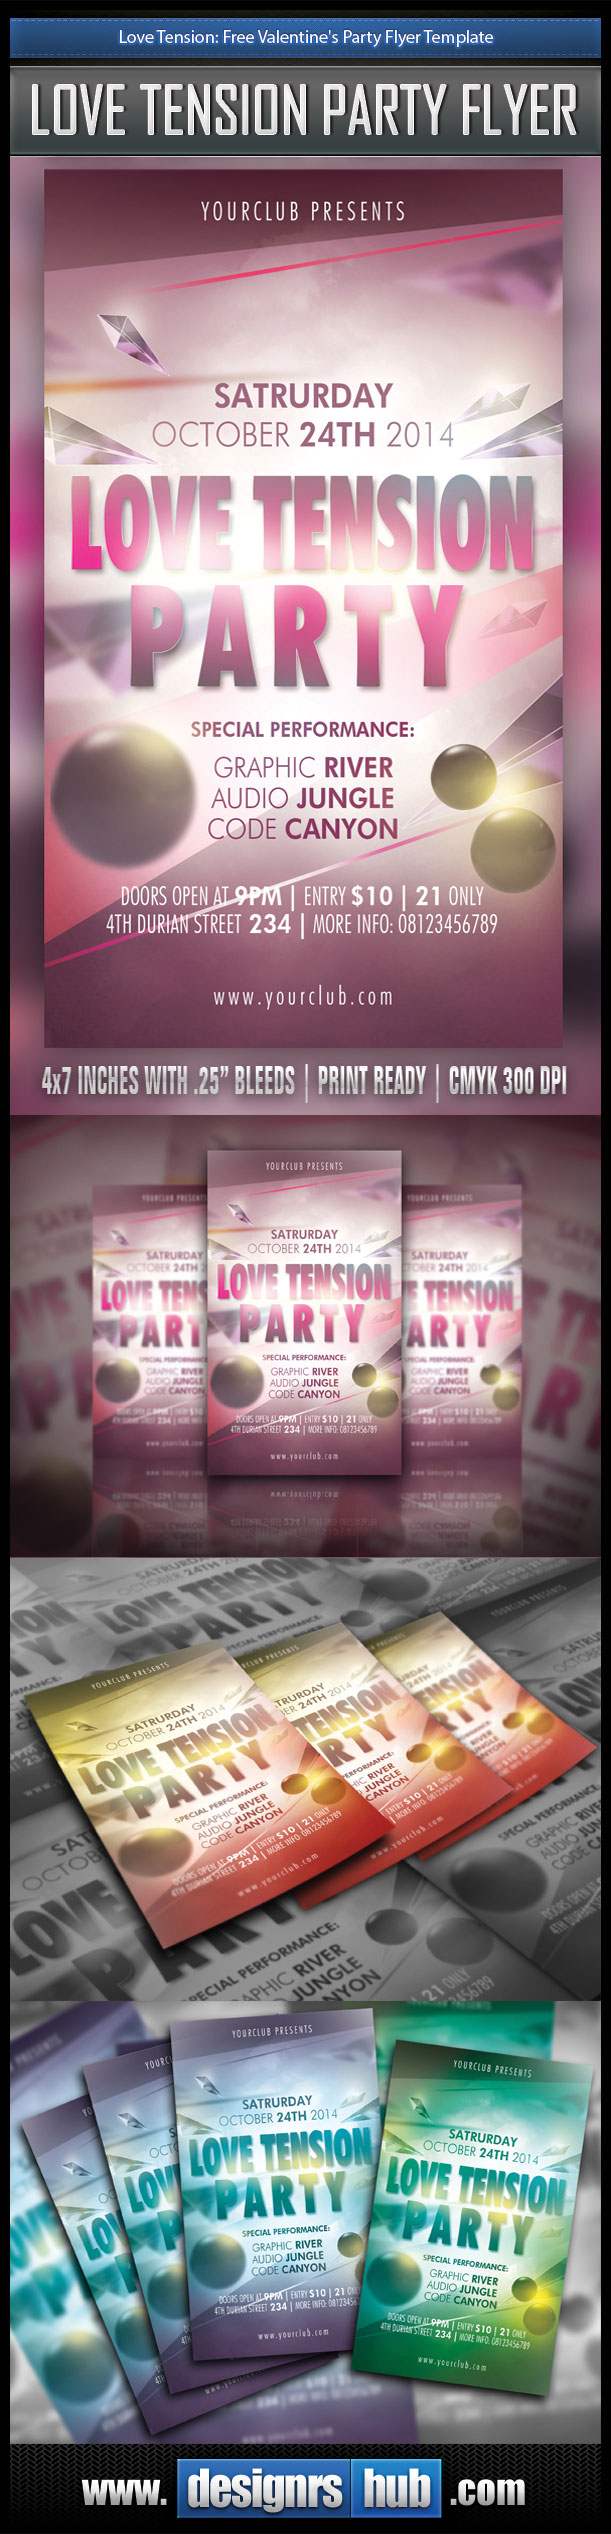 Love Tension: Free Valentine's Party Flyer Template